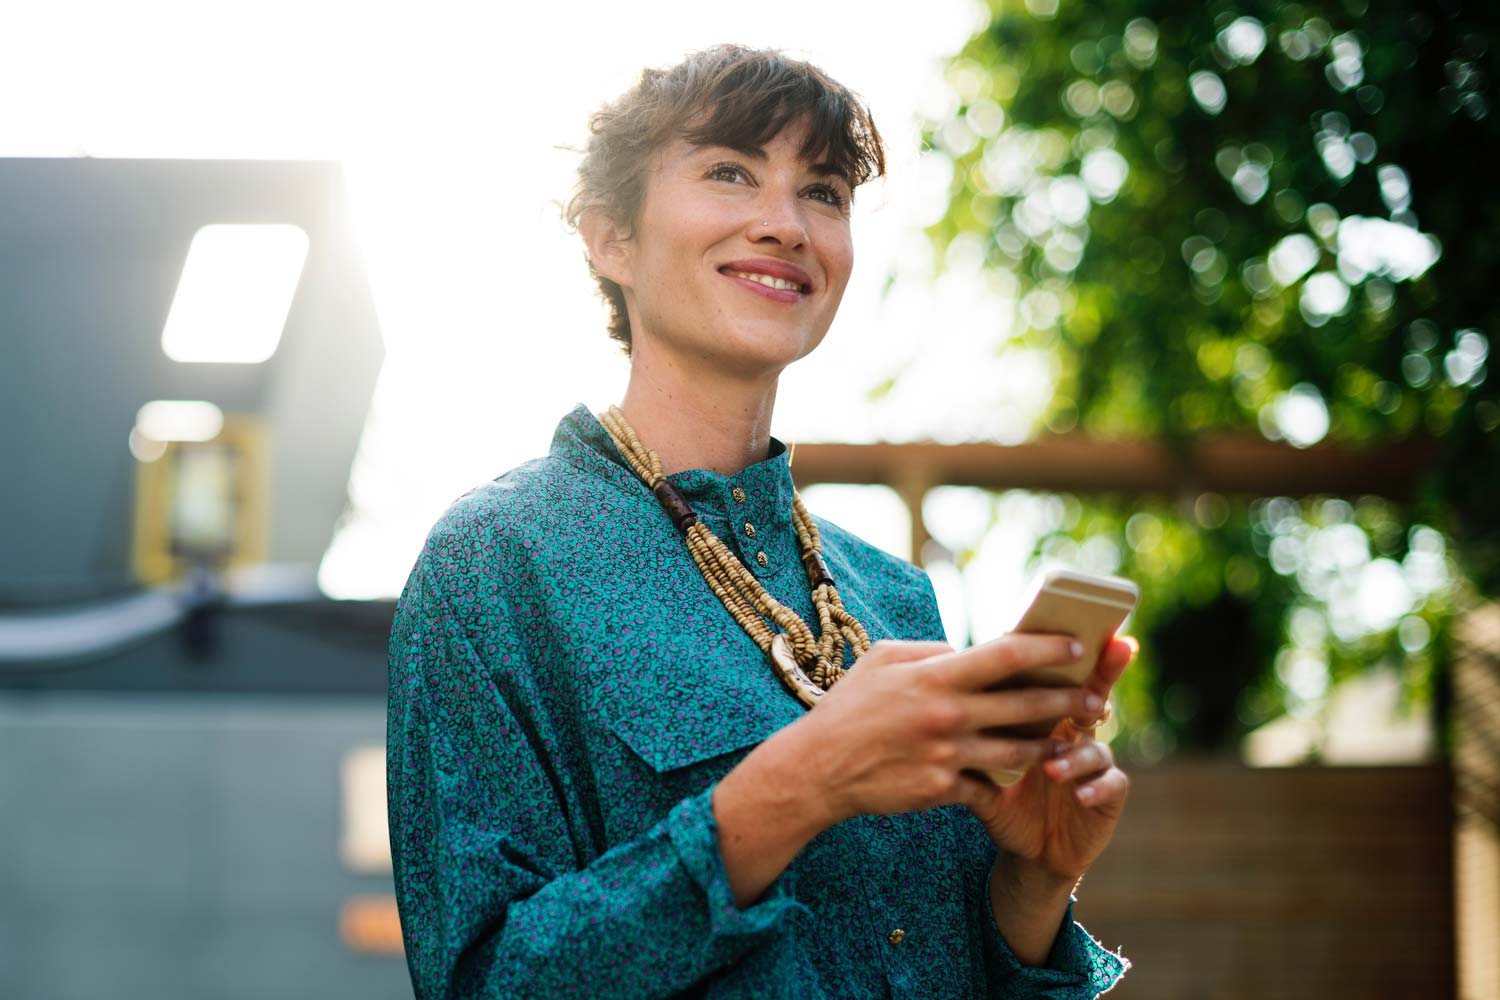 Young, smiling woman gazing thoughtfully up from her smartphone